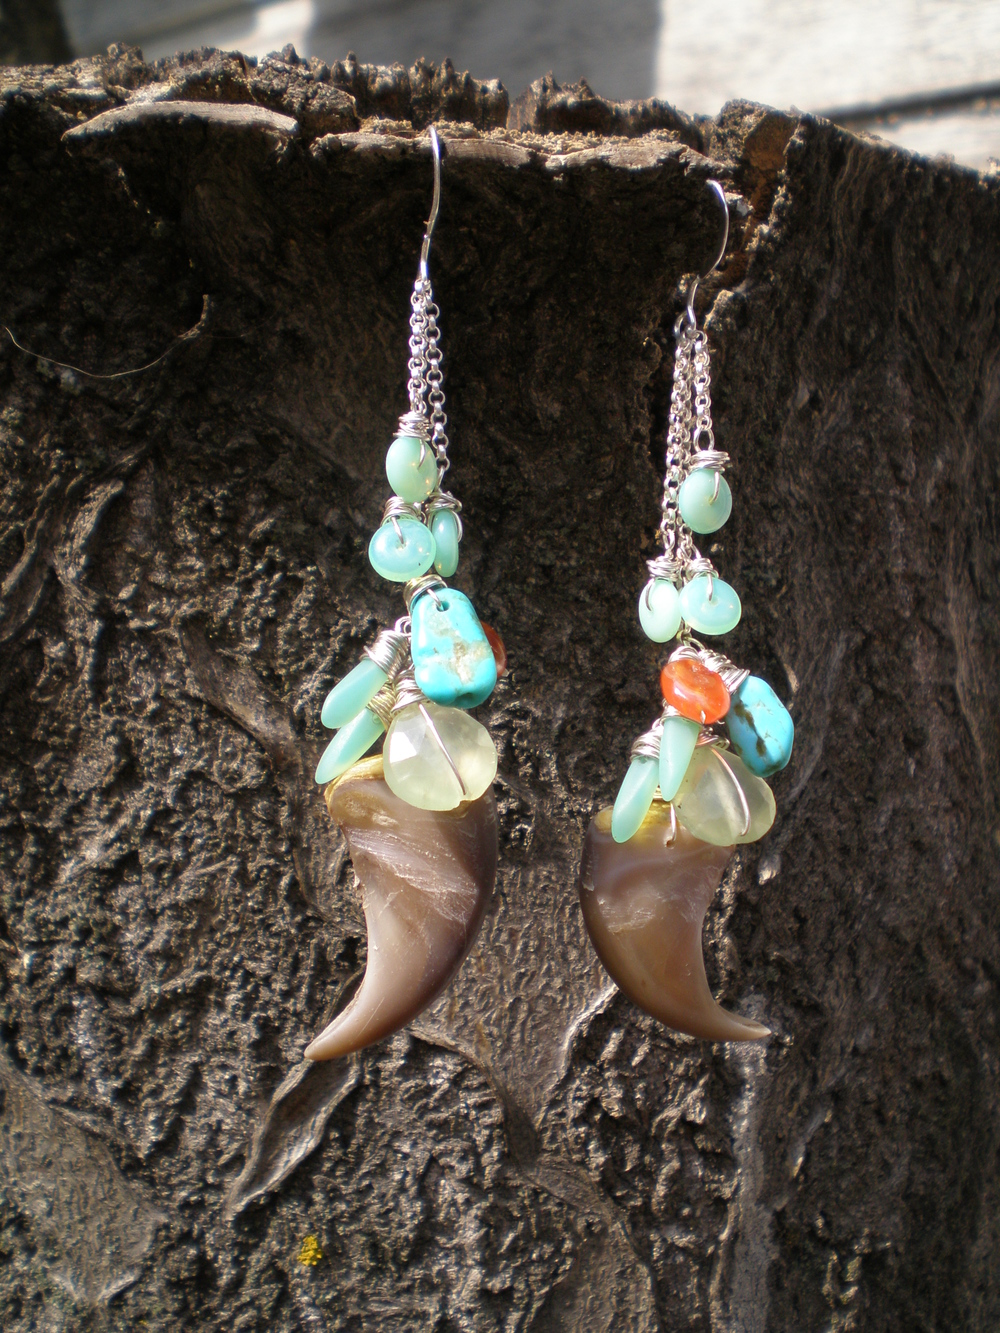 Kate's Bearclaw Earring  : Bearclaws accented with sterling silver, turquoise, prenite, coral & German glass.